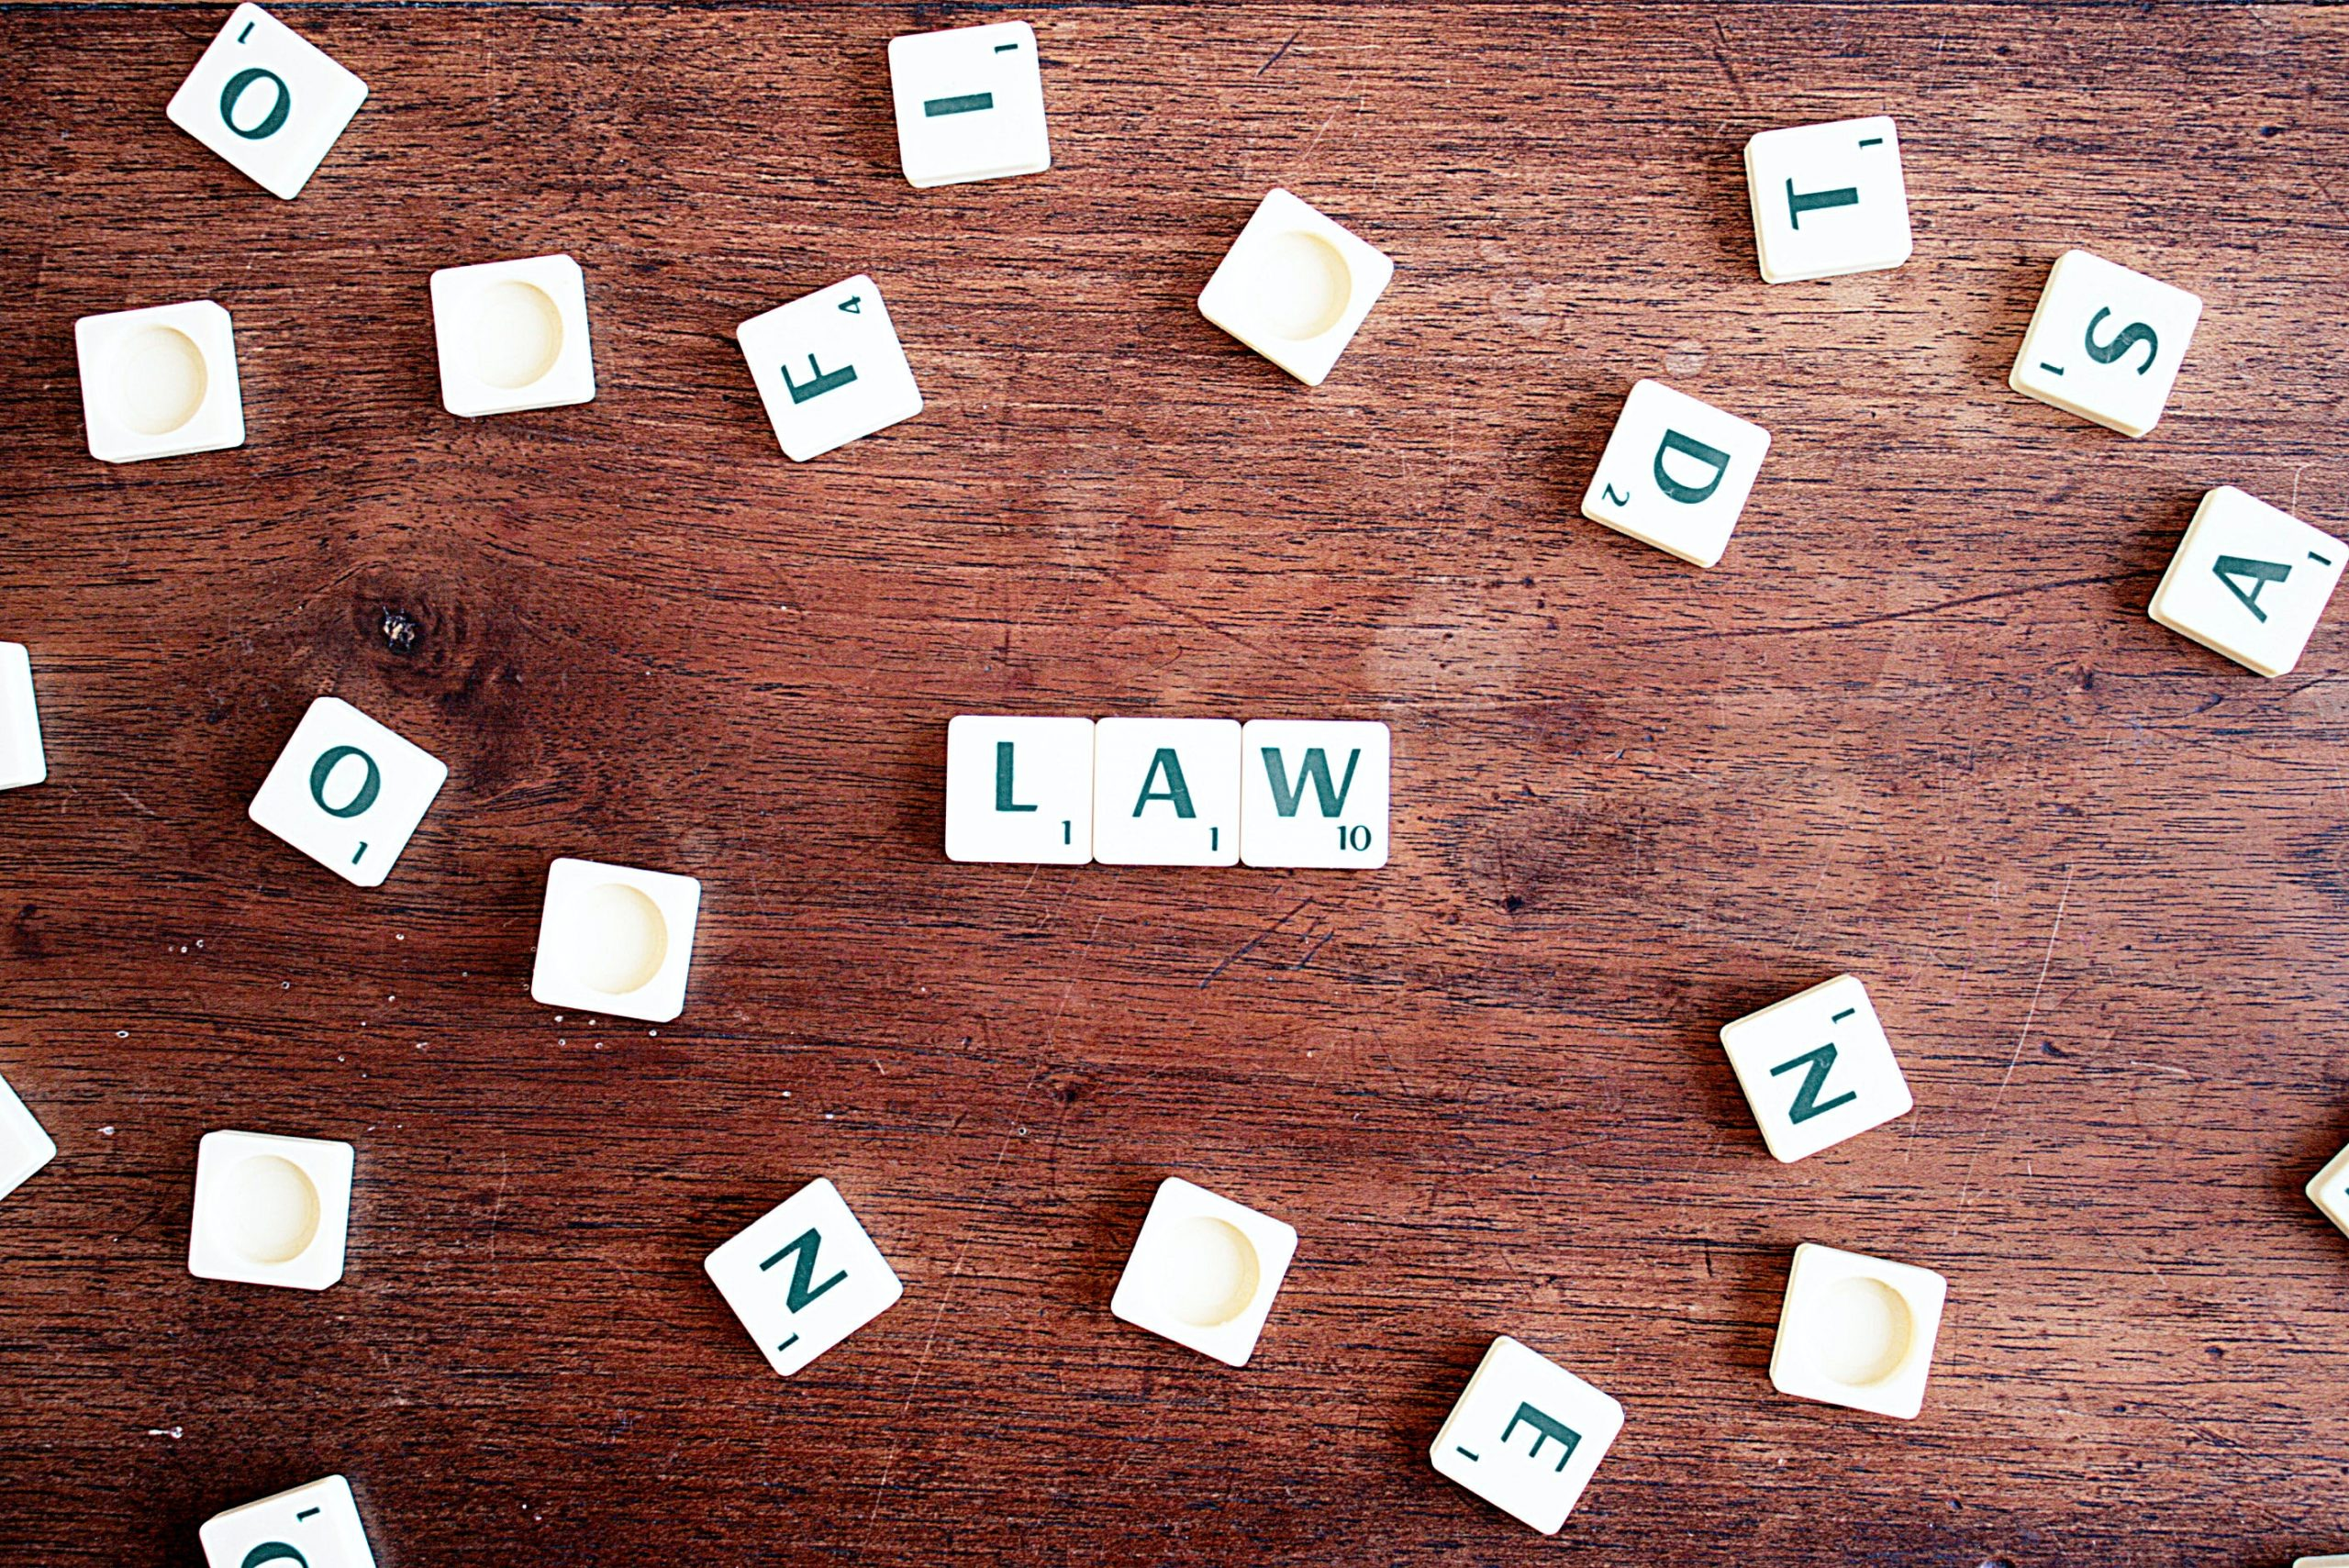 letters spelling out law